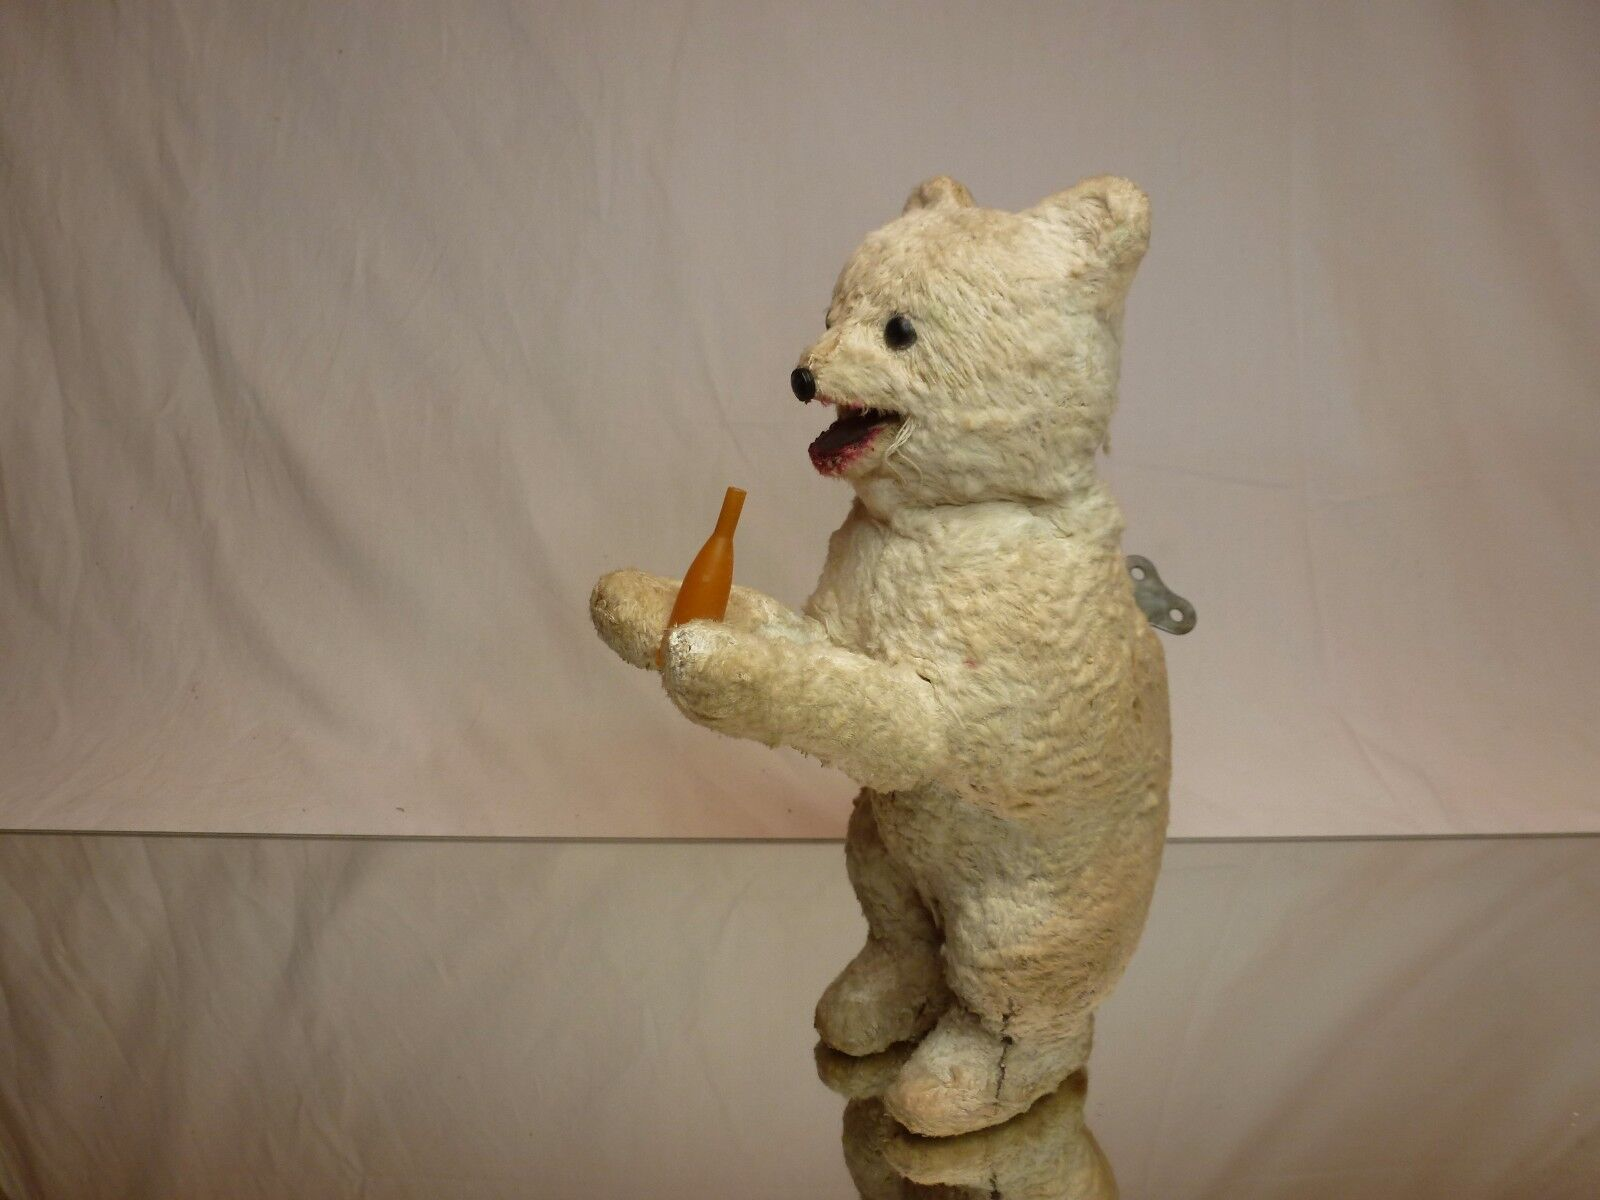 VINTAGE ANTIQUE RUSSIAN USSR WIND-UP POLAR BEAR - H24.0cm - EXTREMELY RARE